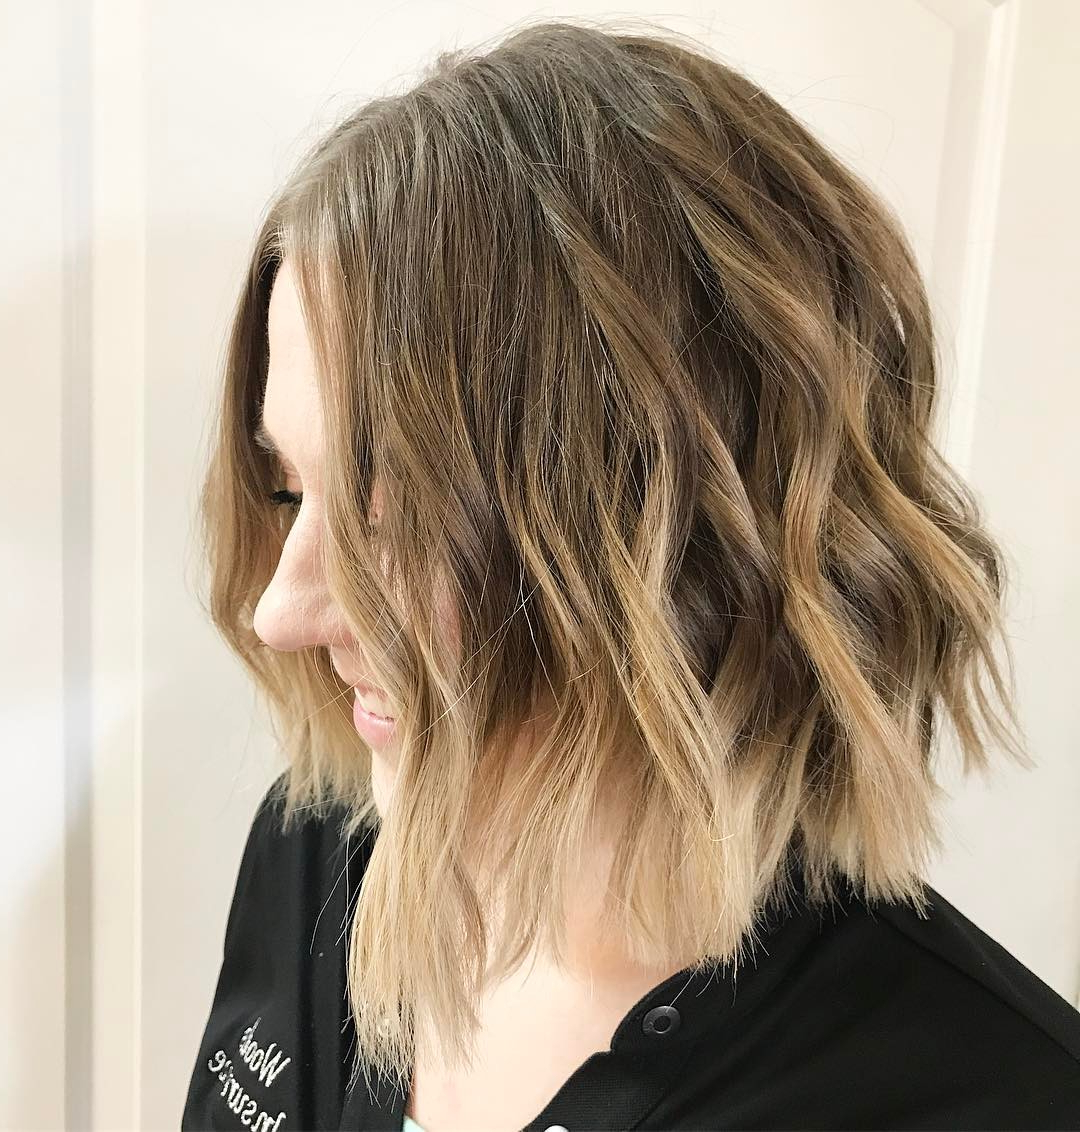 10 Beautiful Medium Bob Haircuts &edgy Looks: Shoulder Length Pertaining To Short Bob Hairstyles With Long Edgy Layers (View 7 of 20)